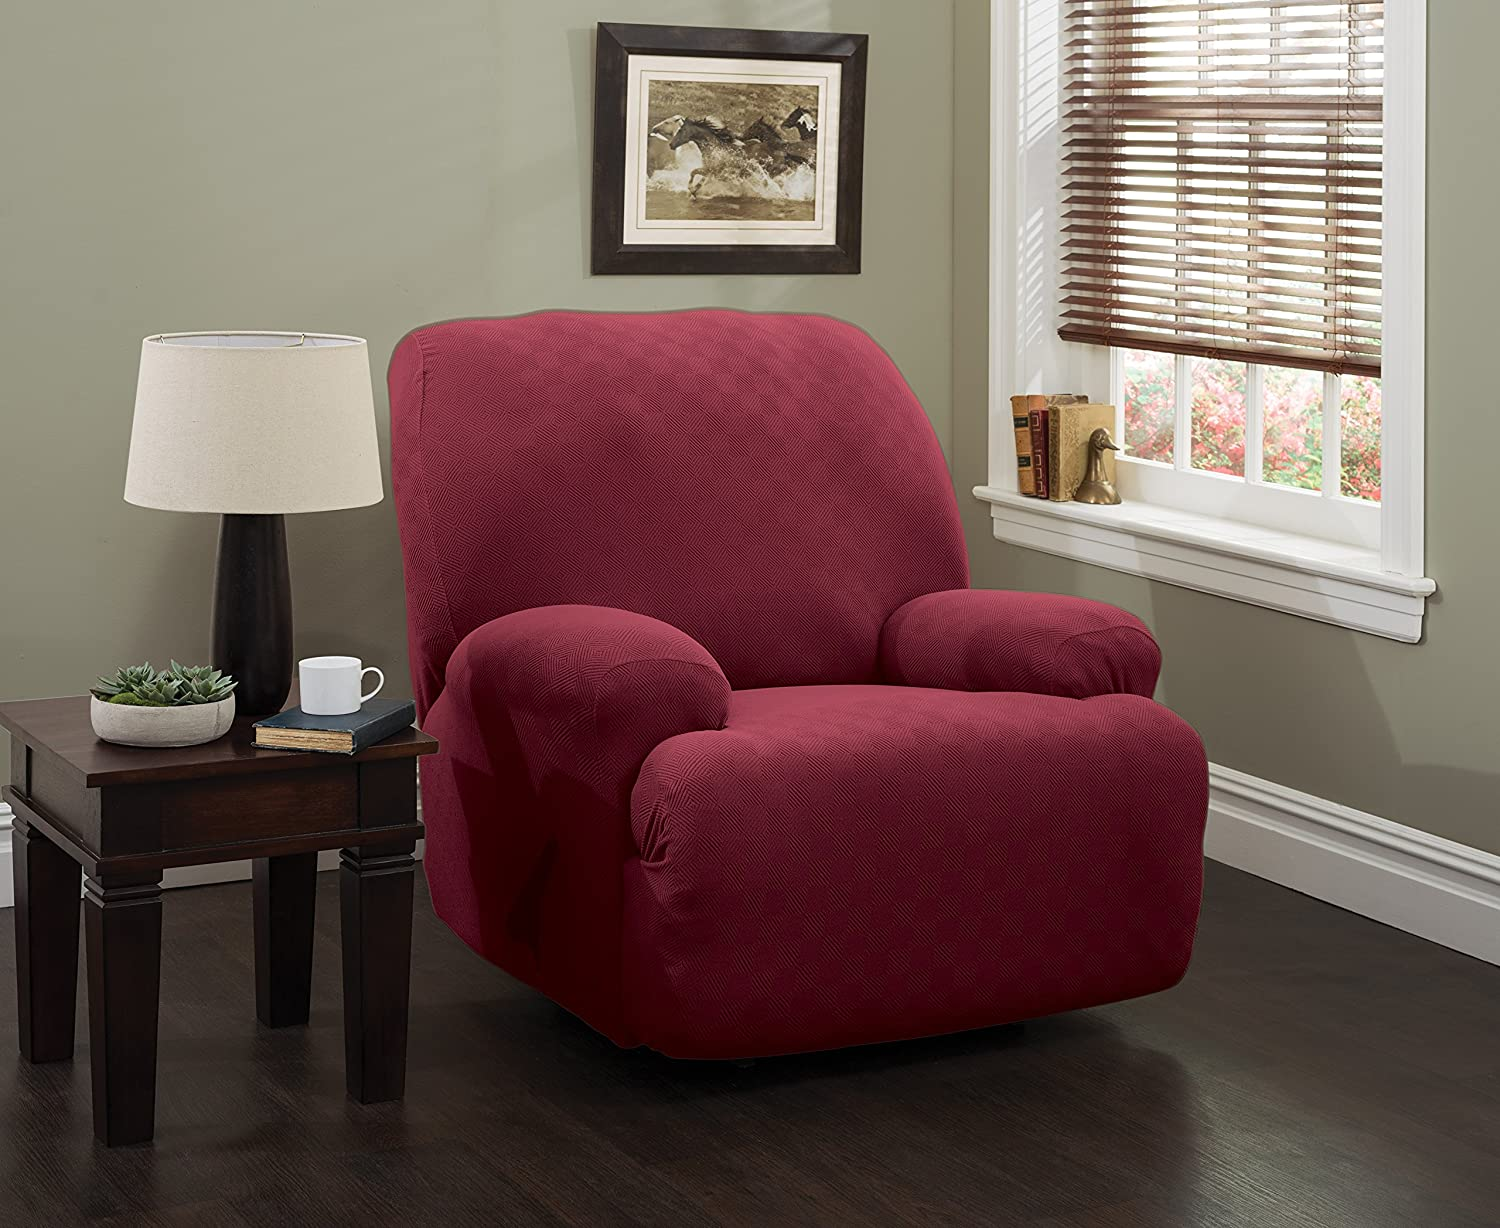 Stretch Sensations 849203017541 Newport Jumbo Recliner Stretch Slipcover, Brick Jeffrey Home